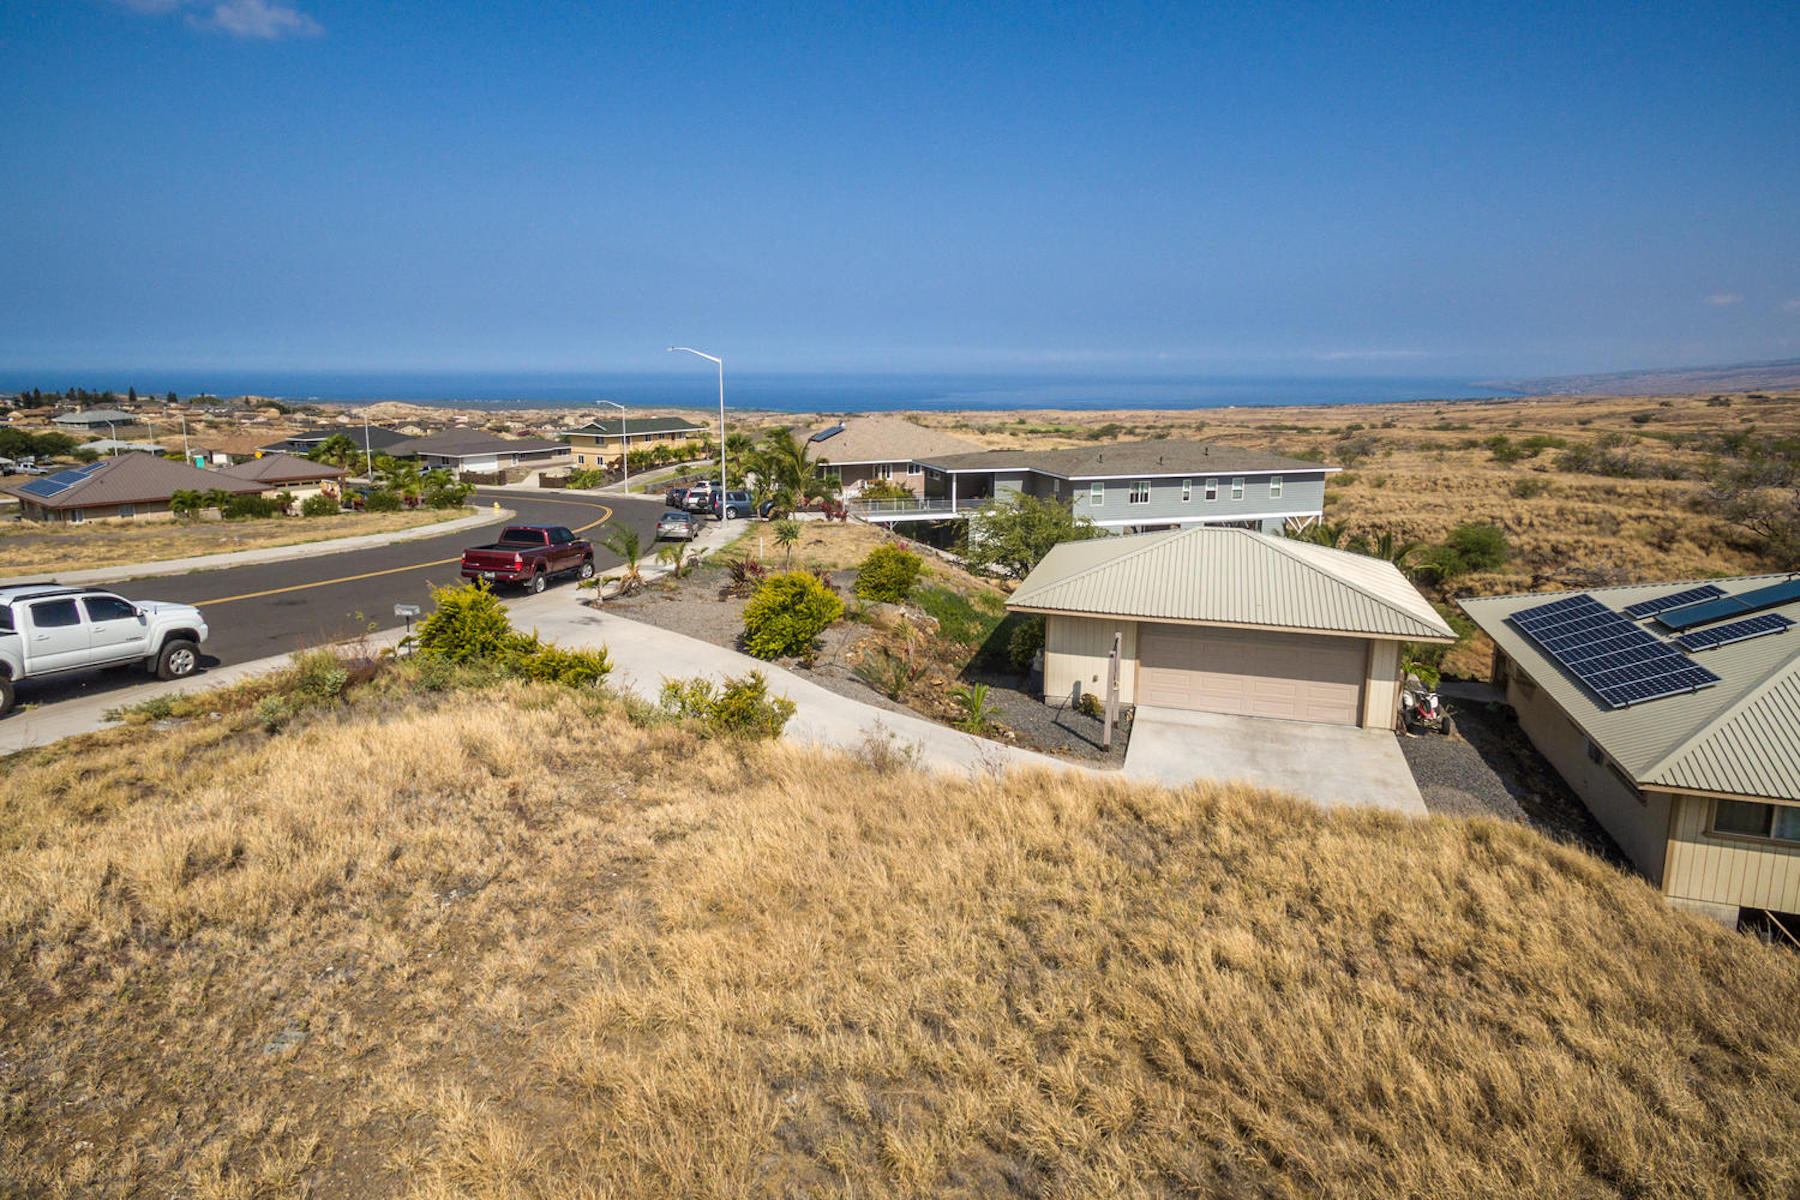 Land for Sale at Waikoloa Haia St. Waikoloa, Hawaii, 96738 United States